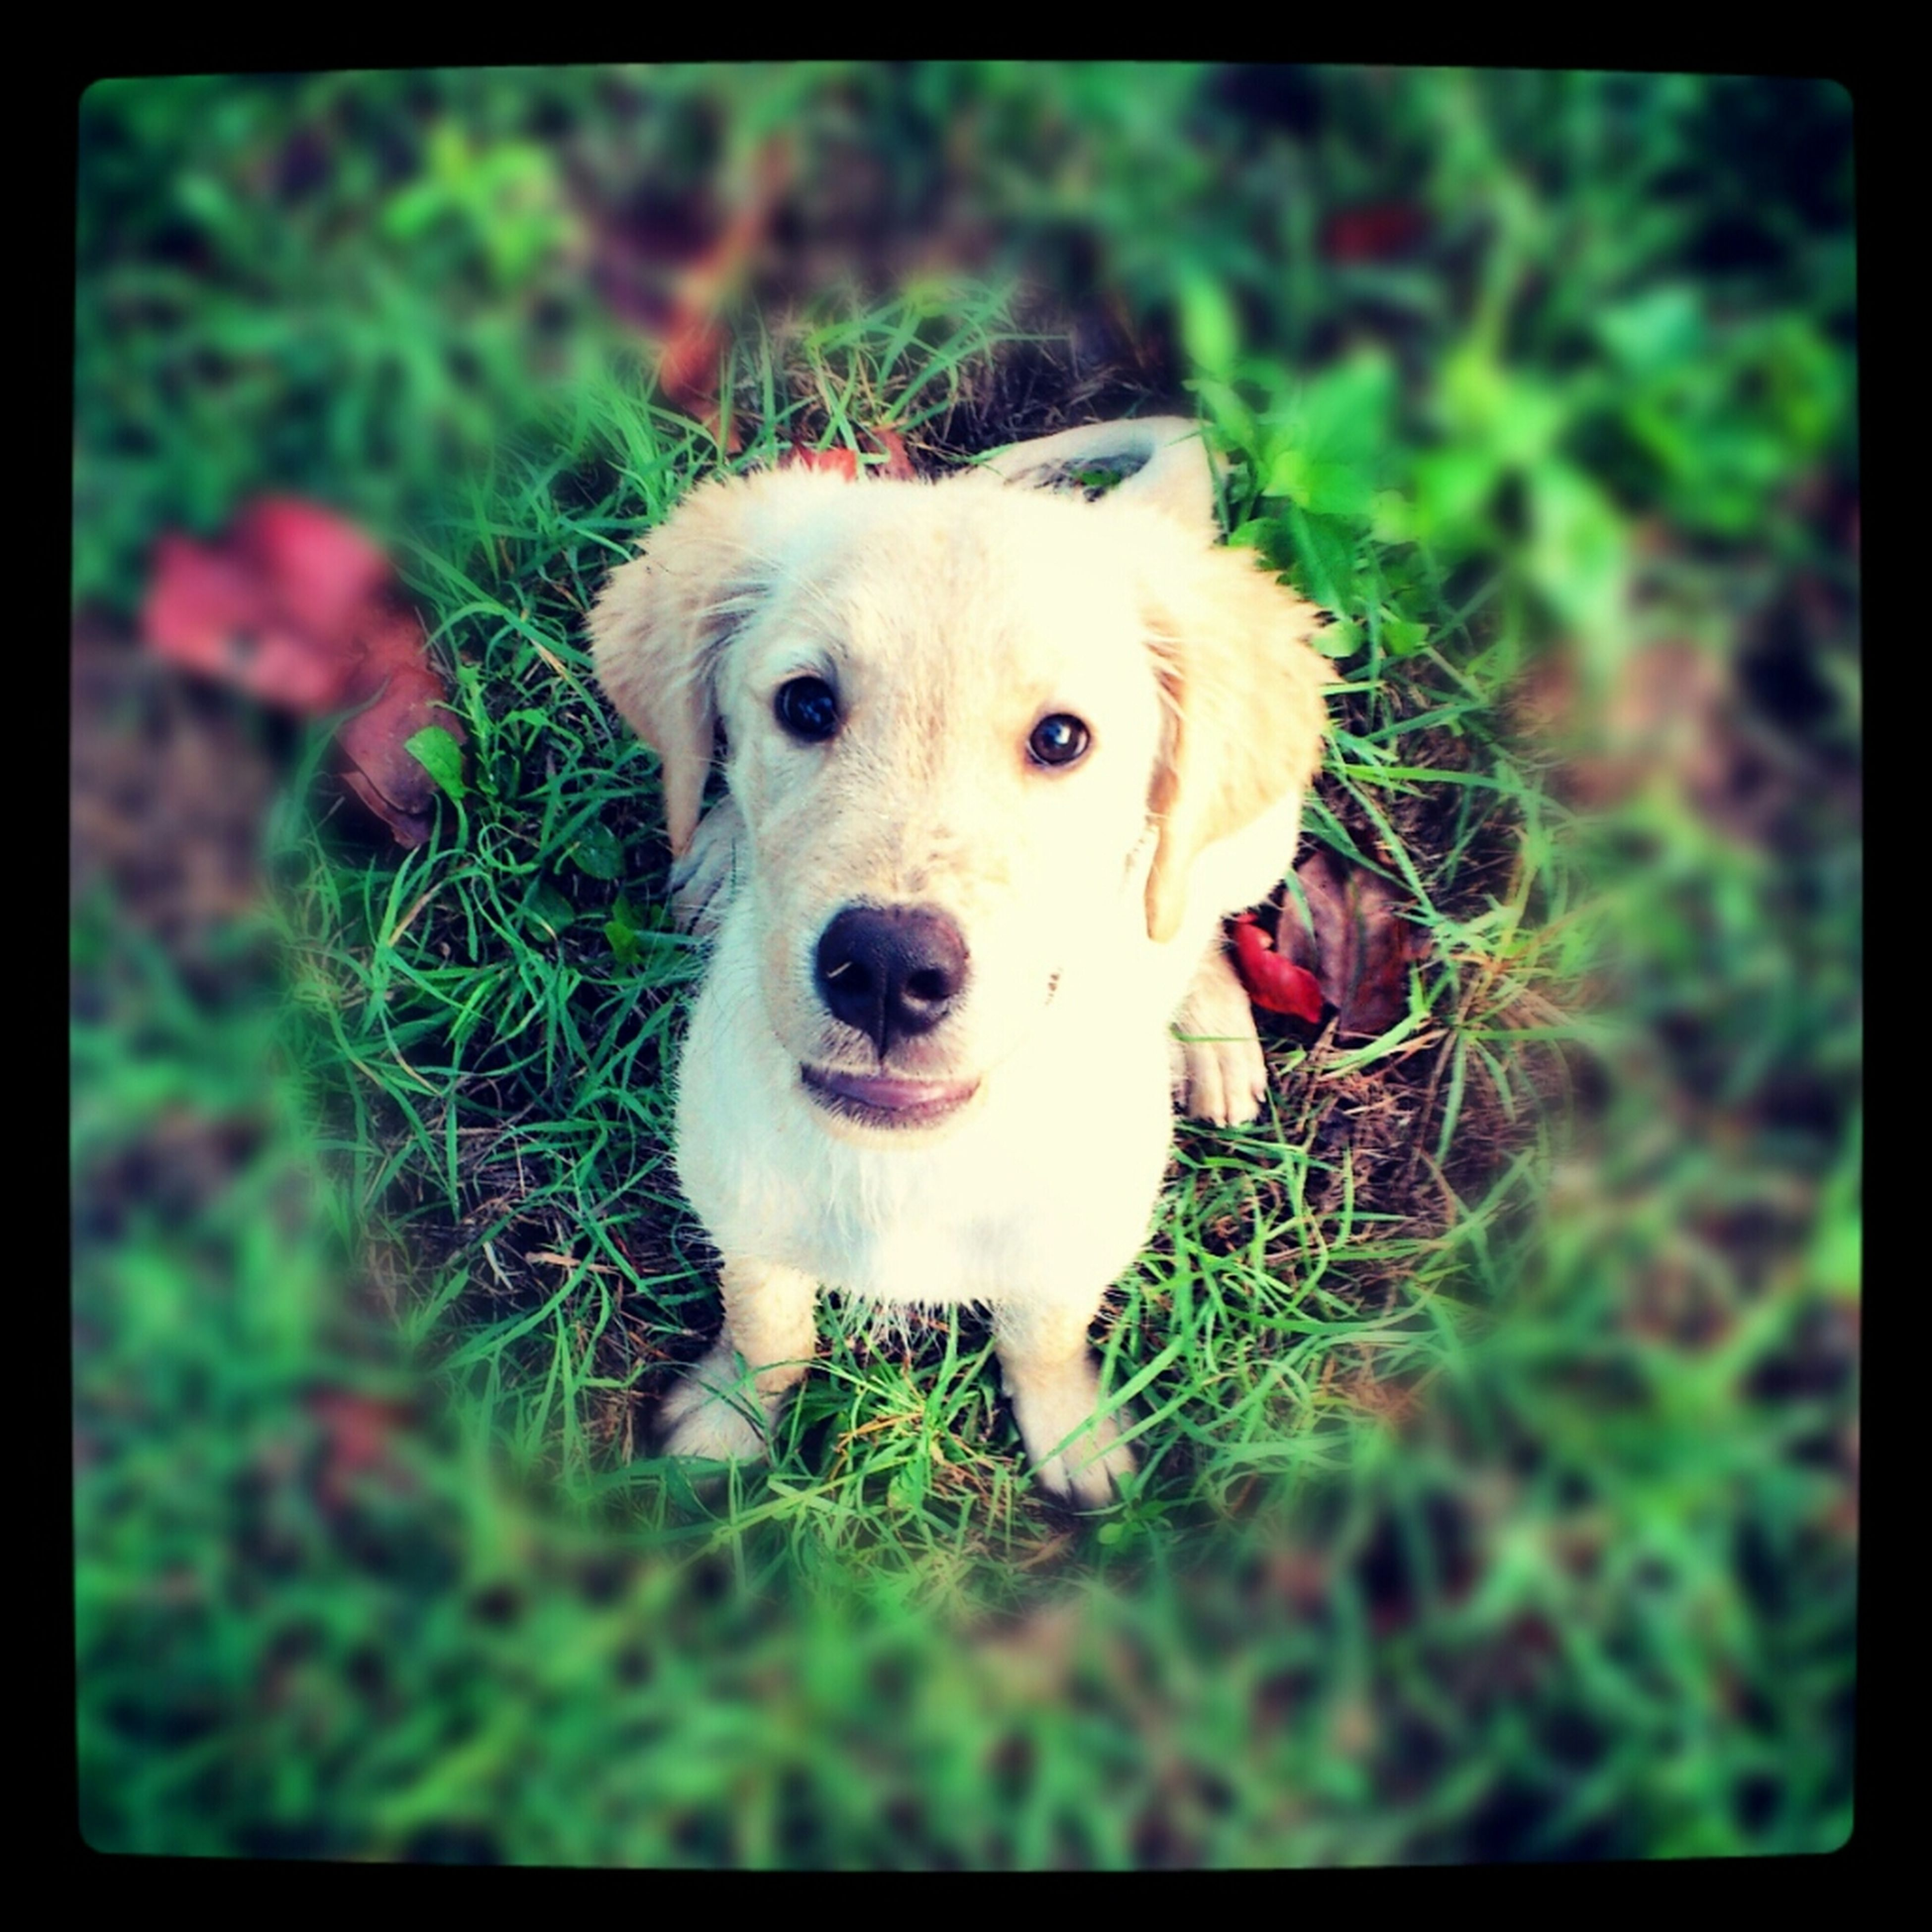 dog, transfer print, pets, animal themes, domestic animals, one animal, grass, auto post production filter, mammal, looking at camera, portrait, field, grassy, cute, high angle view, close-up, selective focus, no people, green color, day